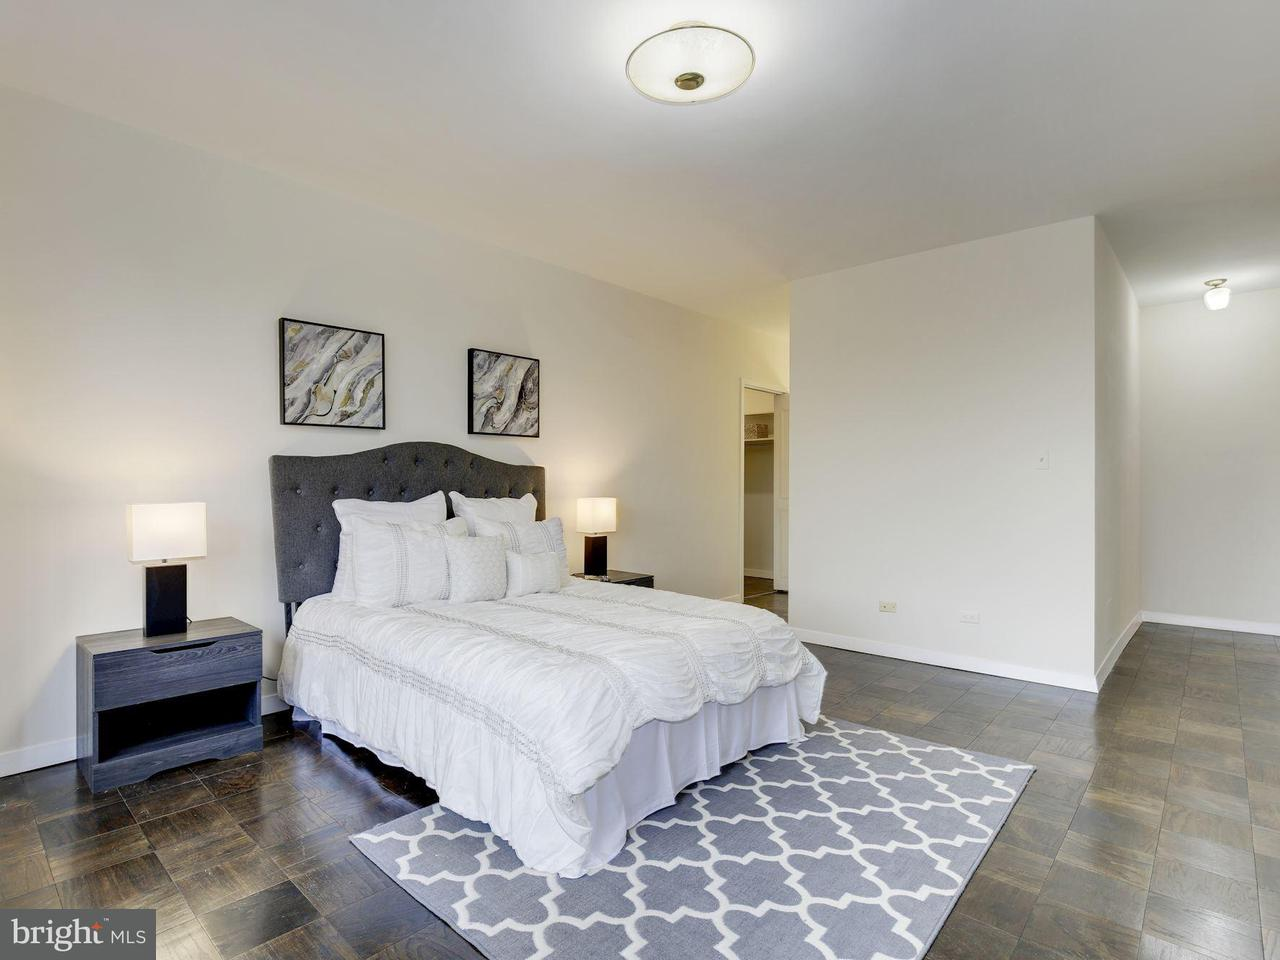 Additional photo for property listing at 2801 New Mexico Ave Nw #801 2801 New Mexico Ave Nw #801 Washington, District Of Columbia 20007 Verenigde Staten